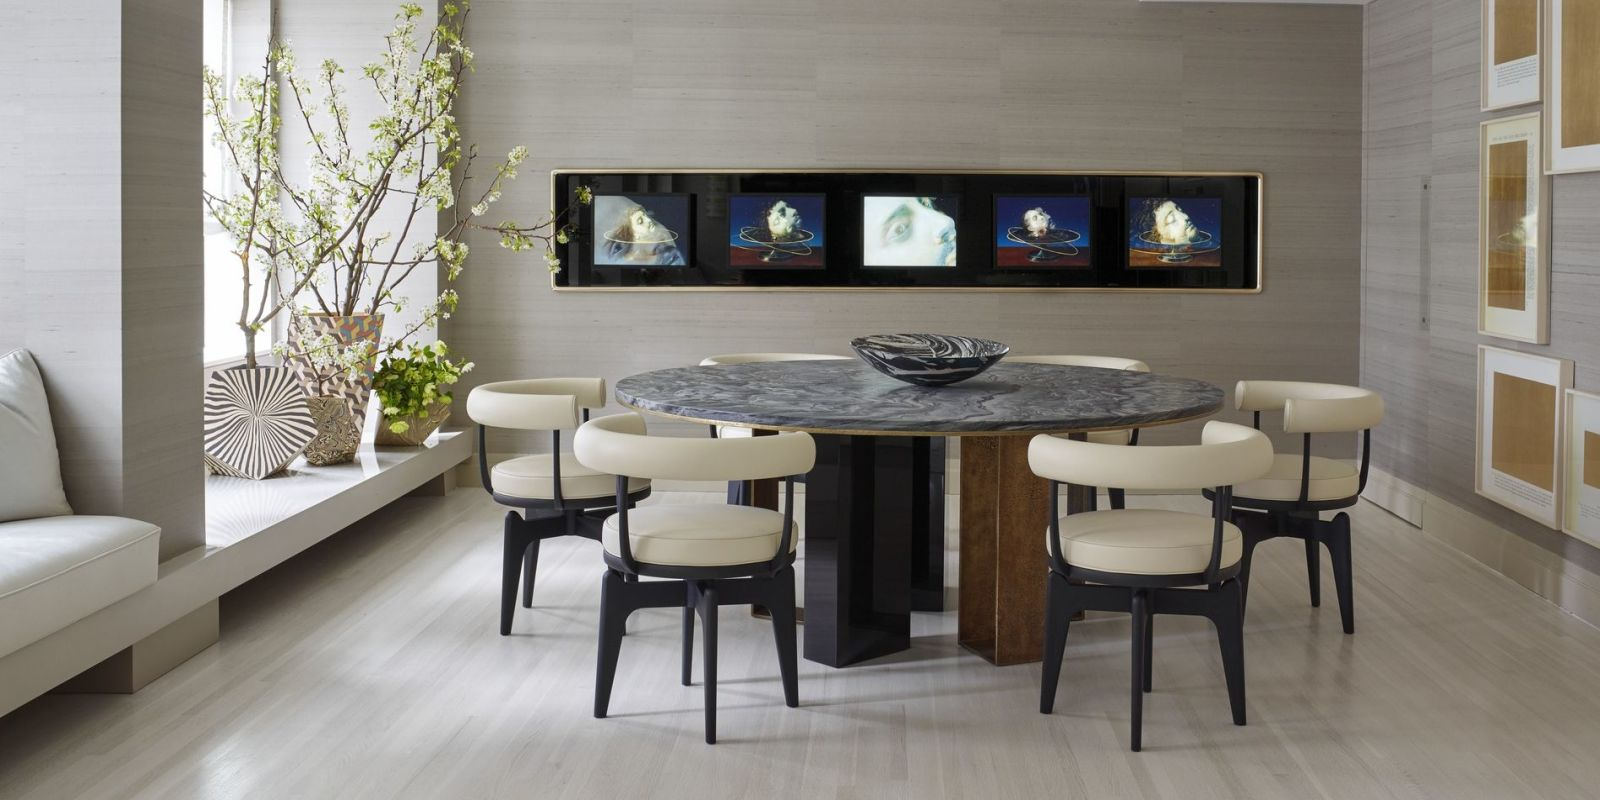 25 modern dining room decorating ideas contemporary dining room furniture - Modern dining room ...